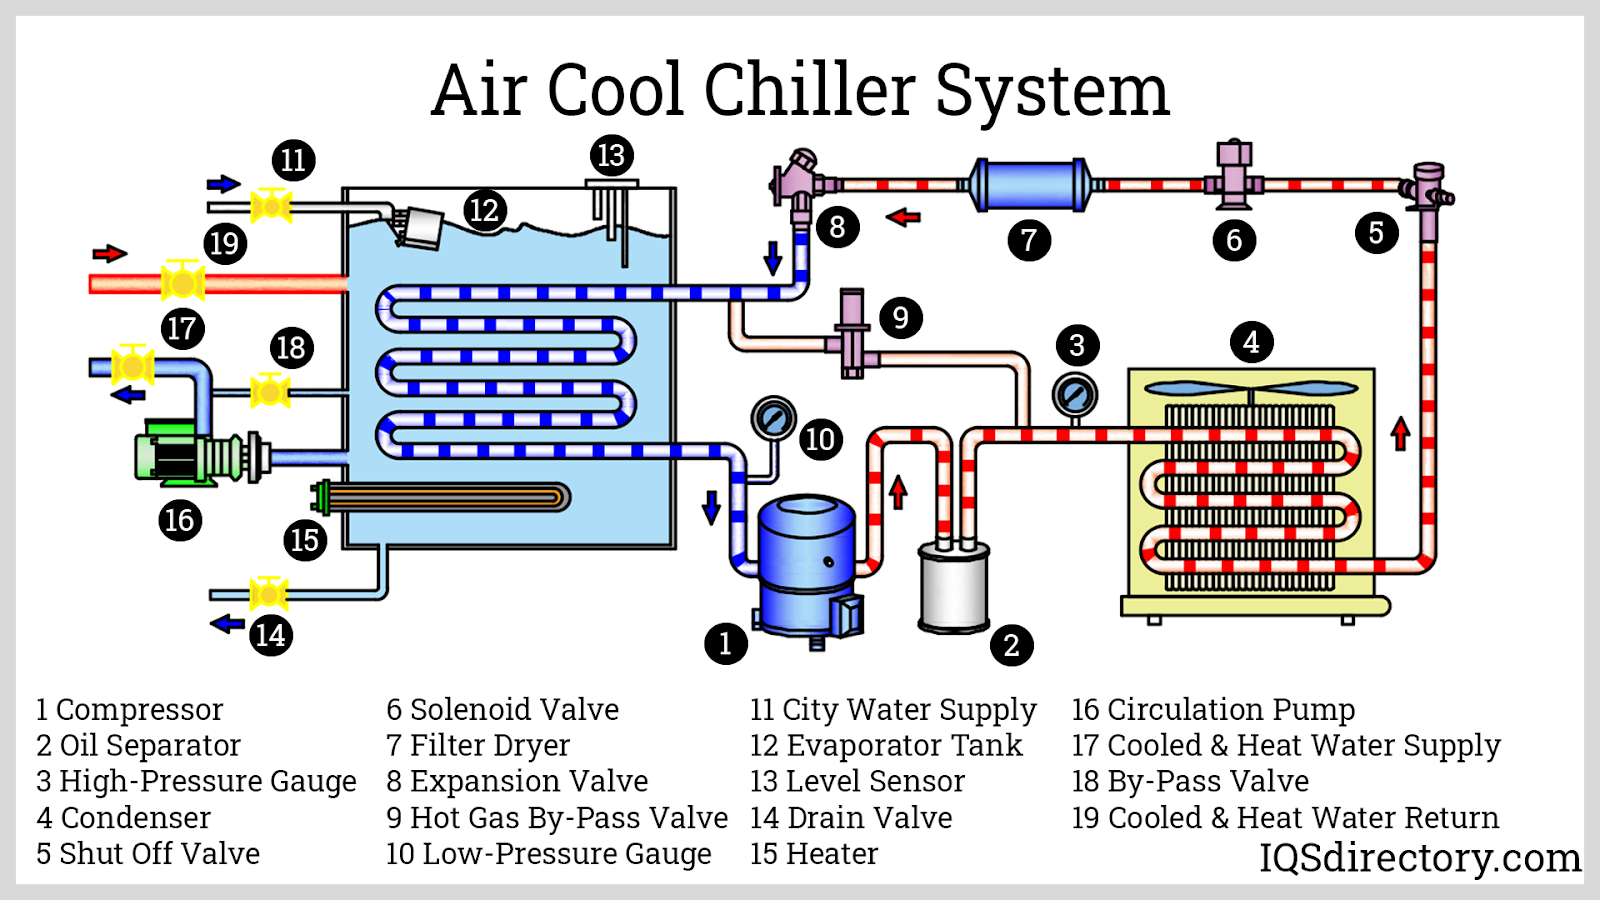 Air Cool Chiller System